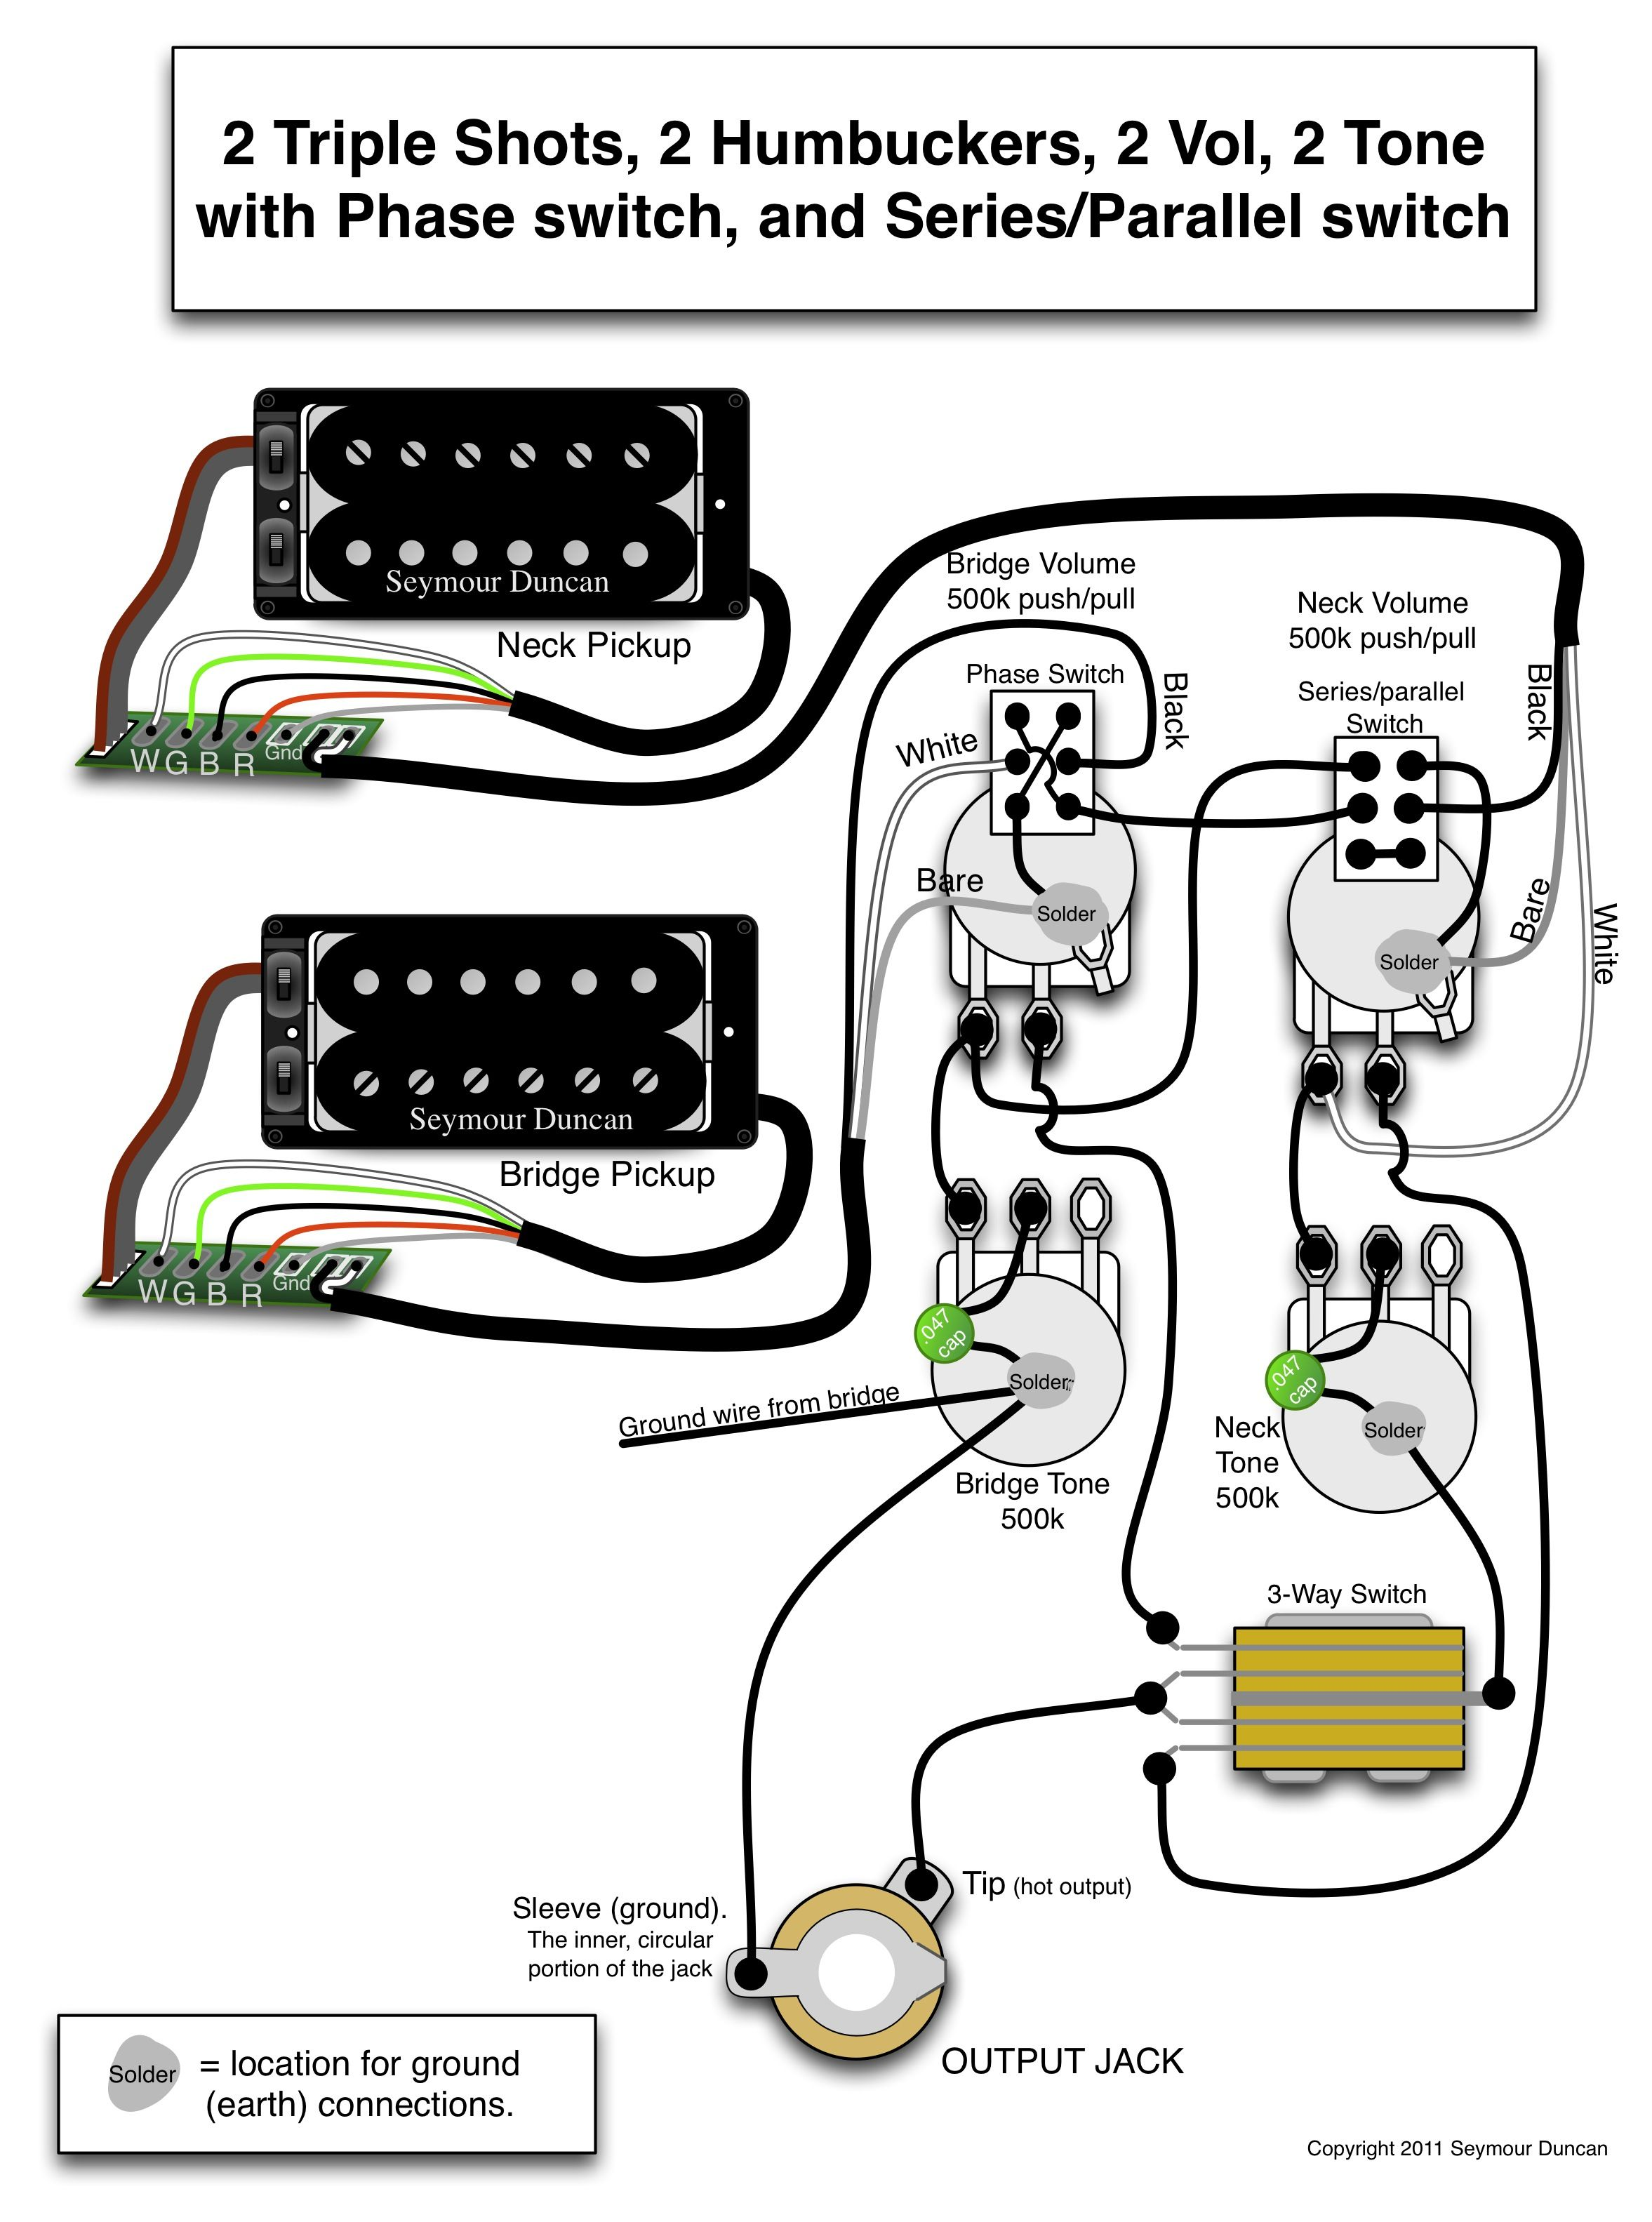 14dc4408abcf3c075a00cd280c1ea7ec seymour duncan wiring diagram 2 triple shots, 2 humbuckers, 2 spin-a-split wiring diagram at edmiracle.co